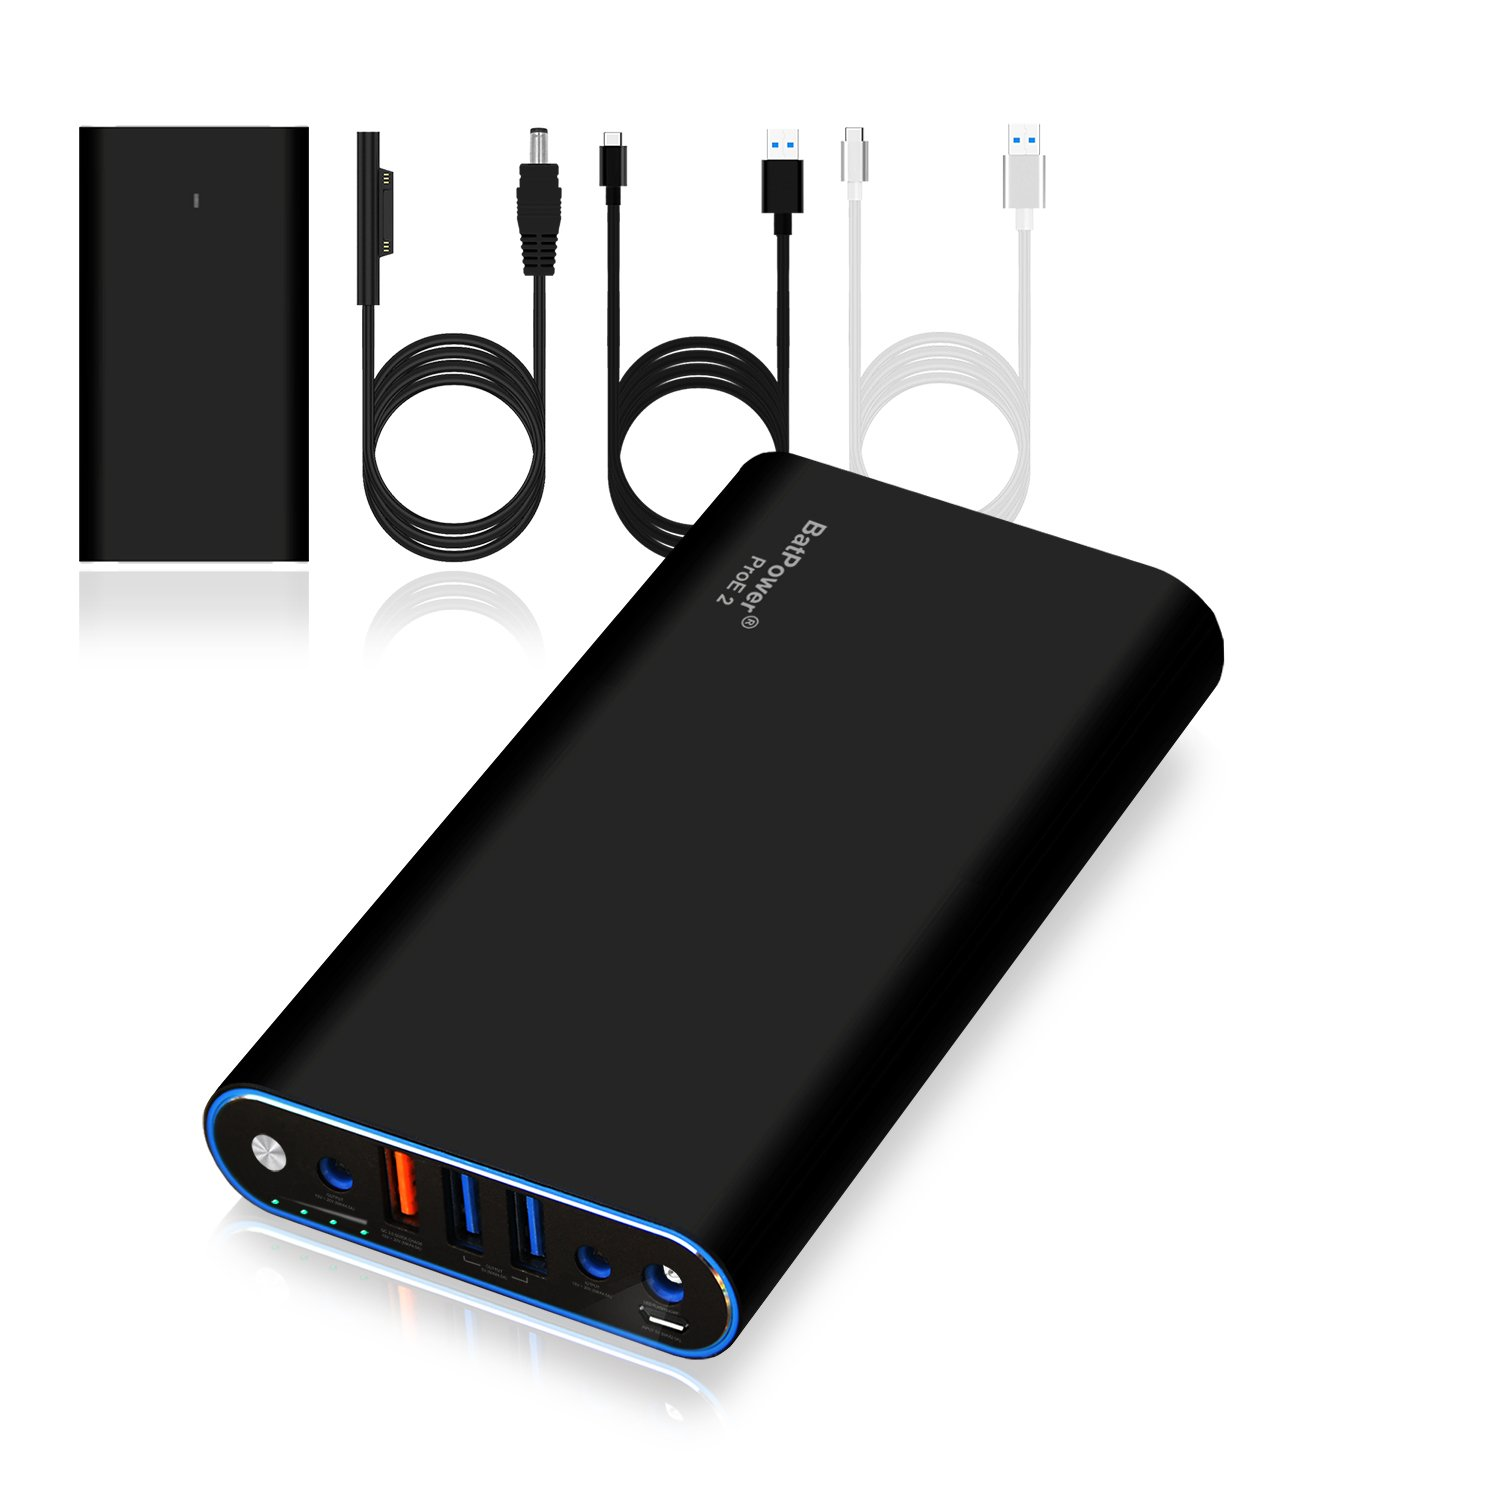 BatPower ProE 2 ES7 Portable Charger External Battery Power Bank for Surface Laptop, Surface Book, Book 2, Surface Pro 4 / 3 / 2 and RT, USB QC 3.0 Fast Charging for Tablet or Smartphone -98Wh